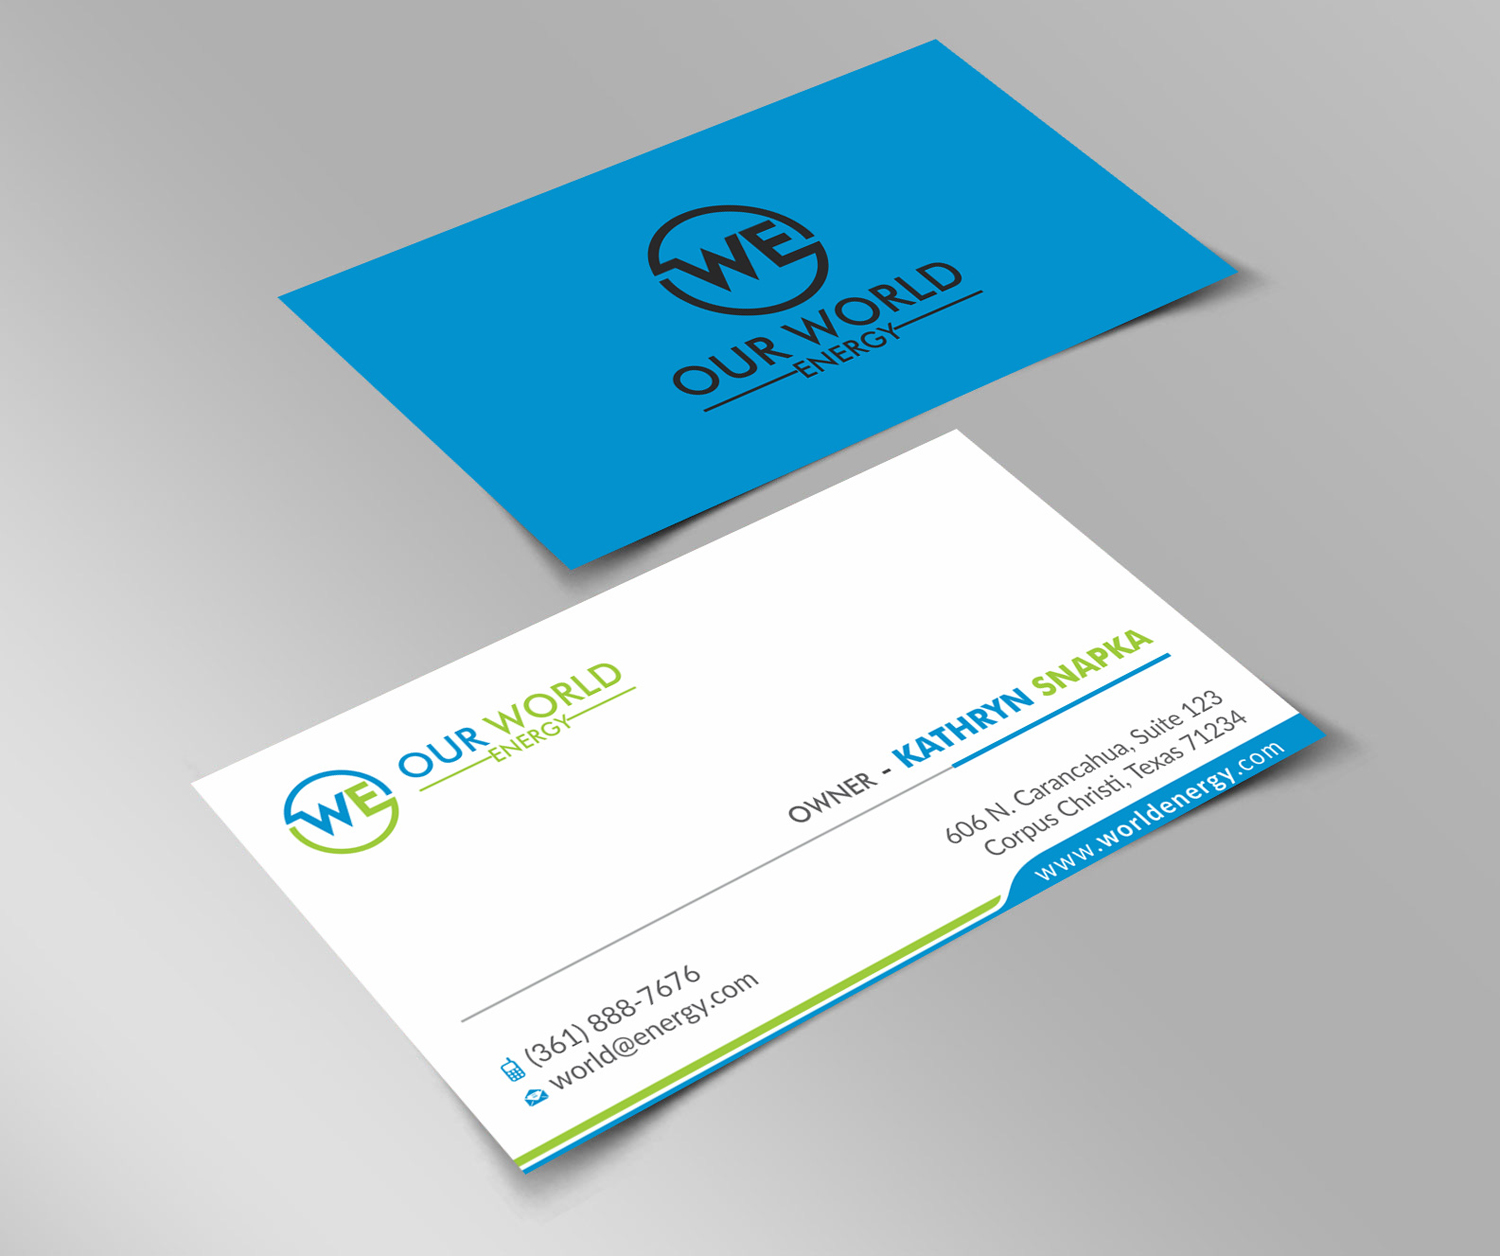 Modern professional business card design for caleb antonucci by business card design by madhuraminfotech for sleek professional business card design needed design colourmoves Image collections